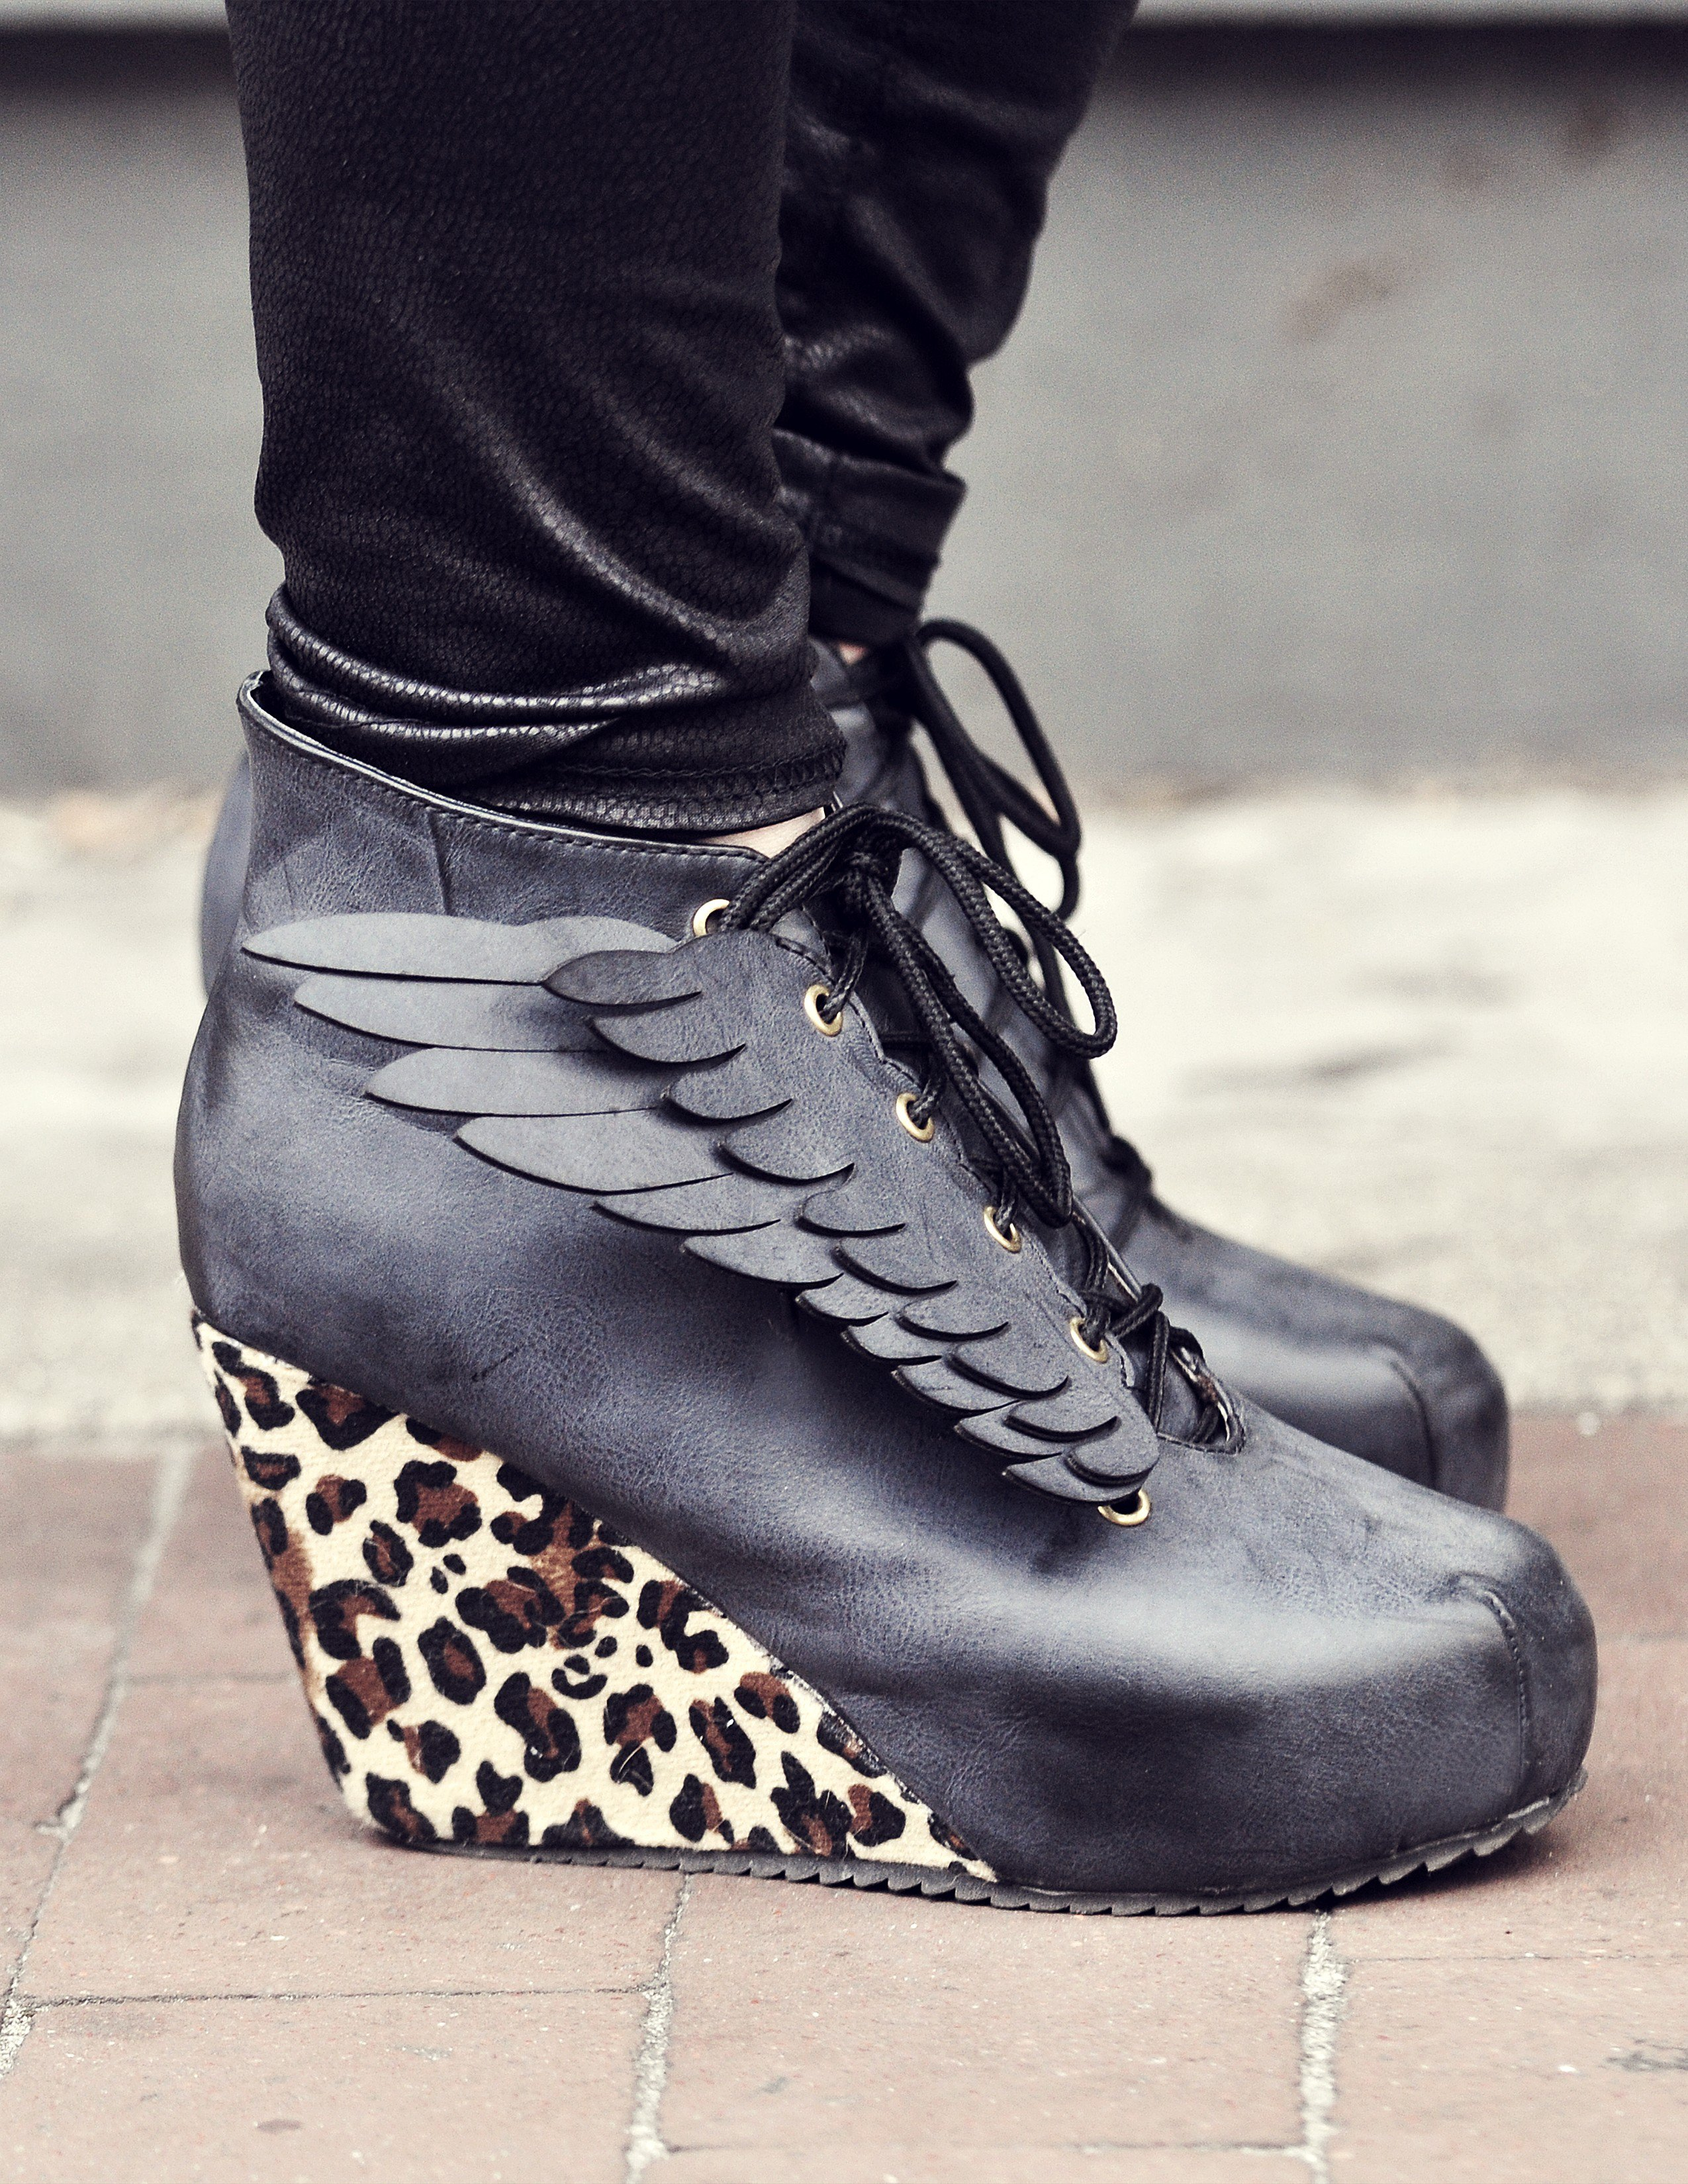 style-boots-13.jpg